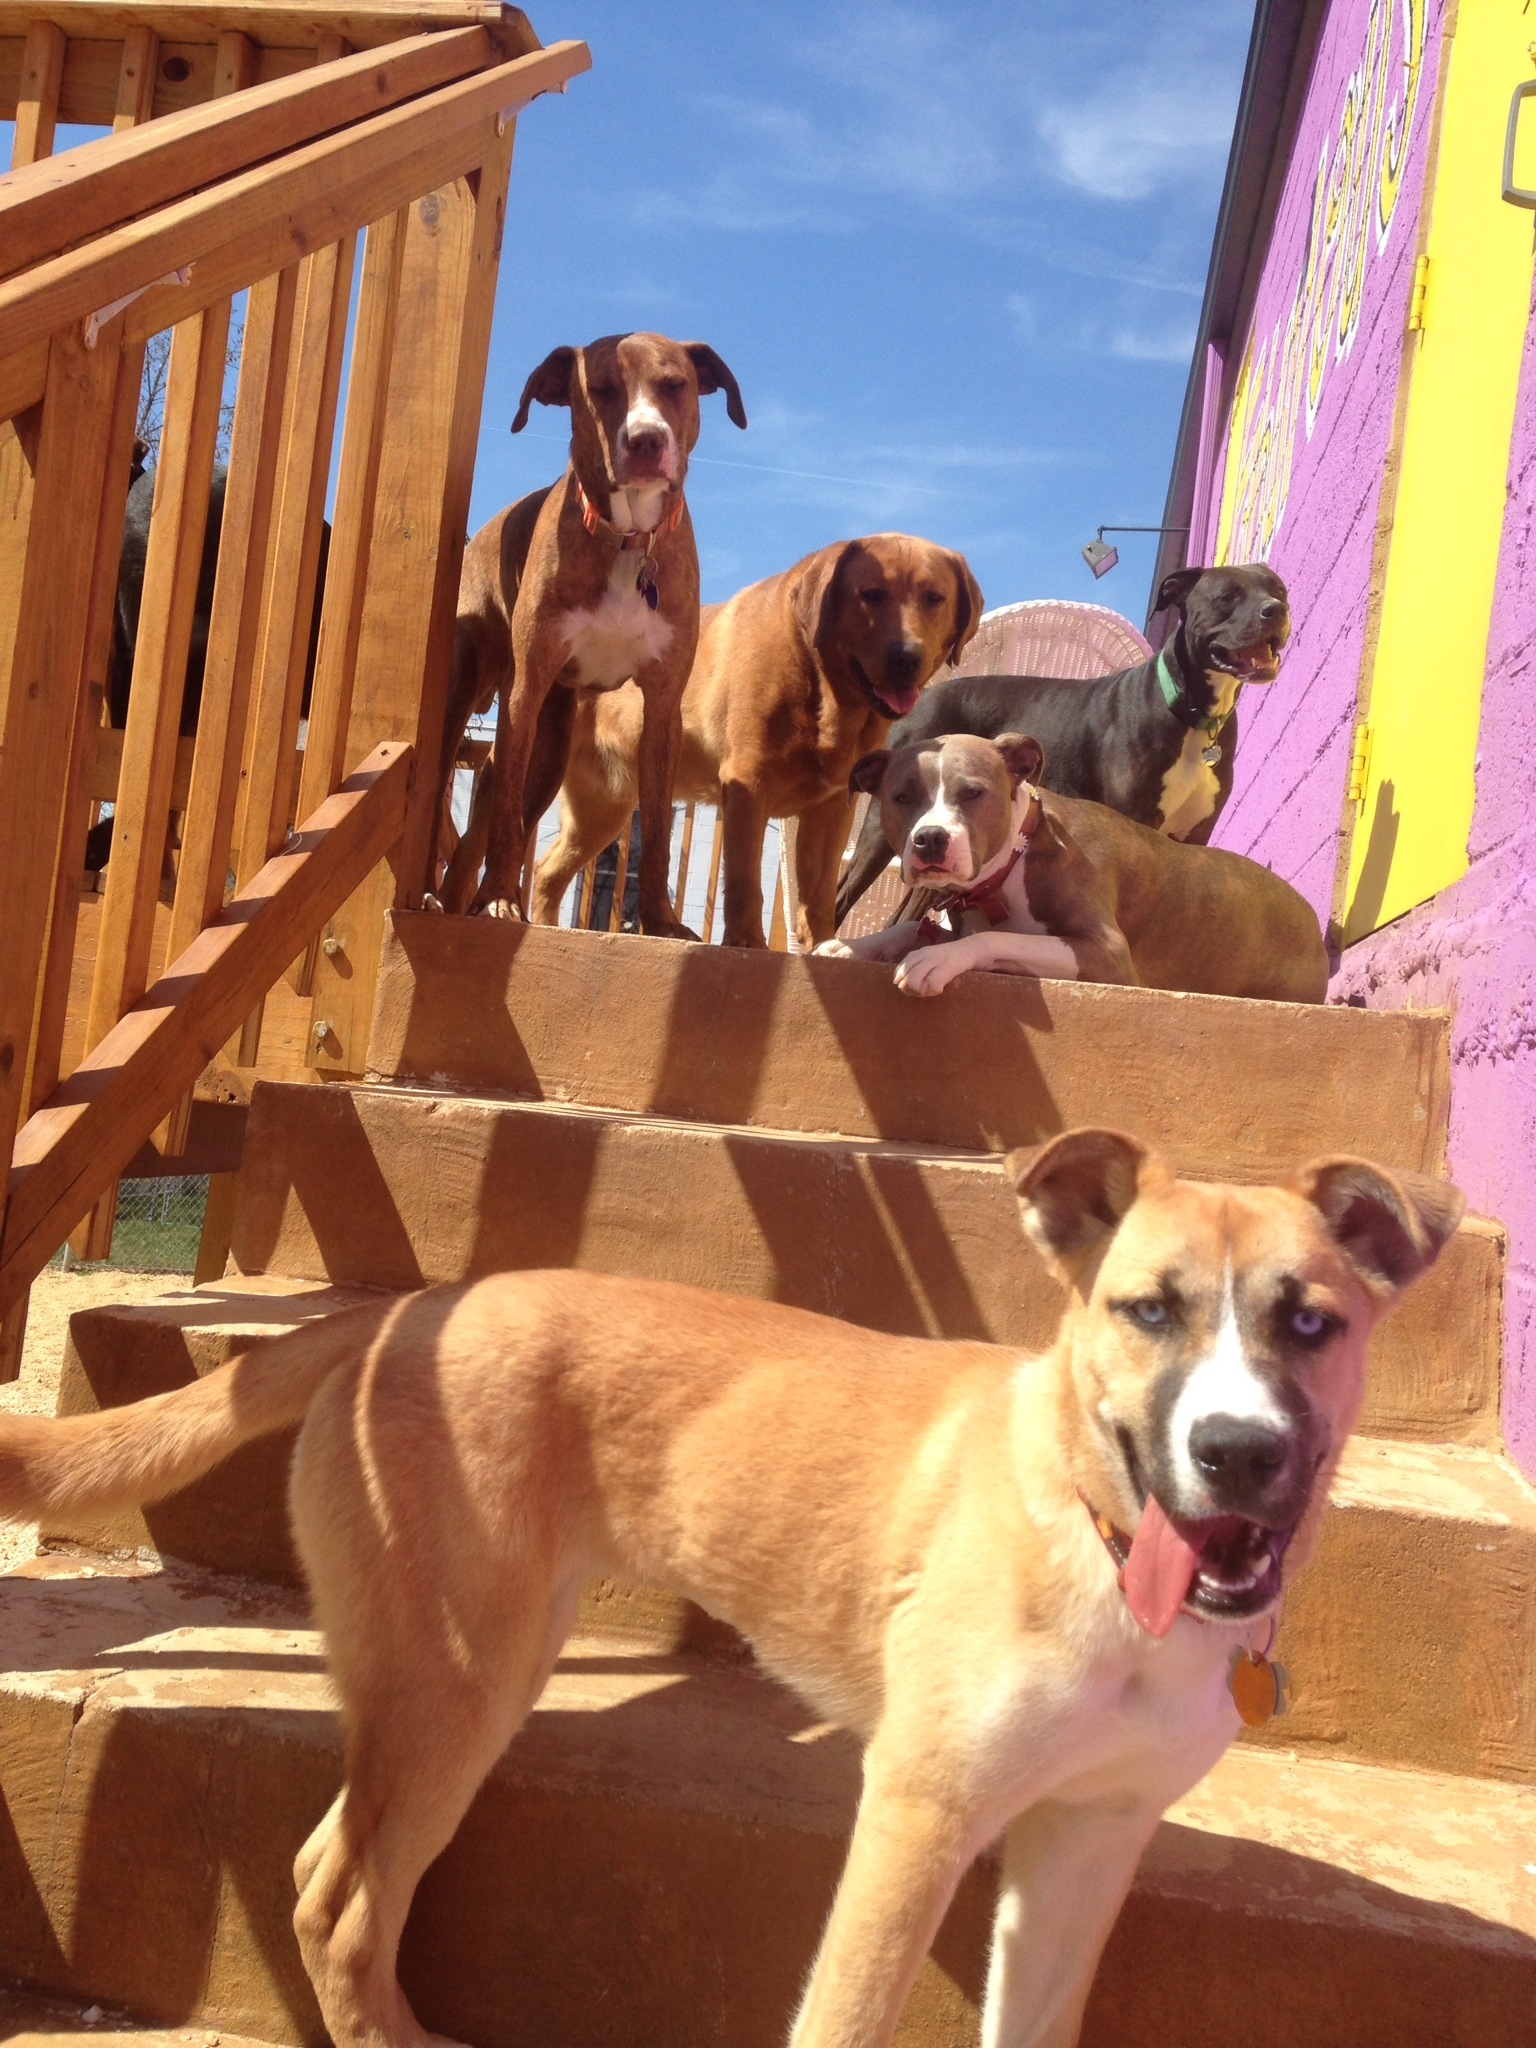 Dog Daycare in Baltimore, MD